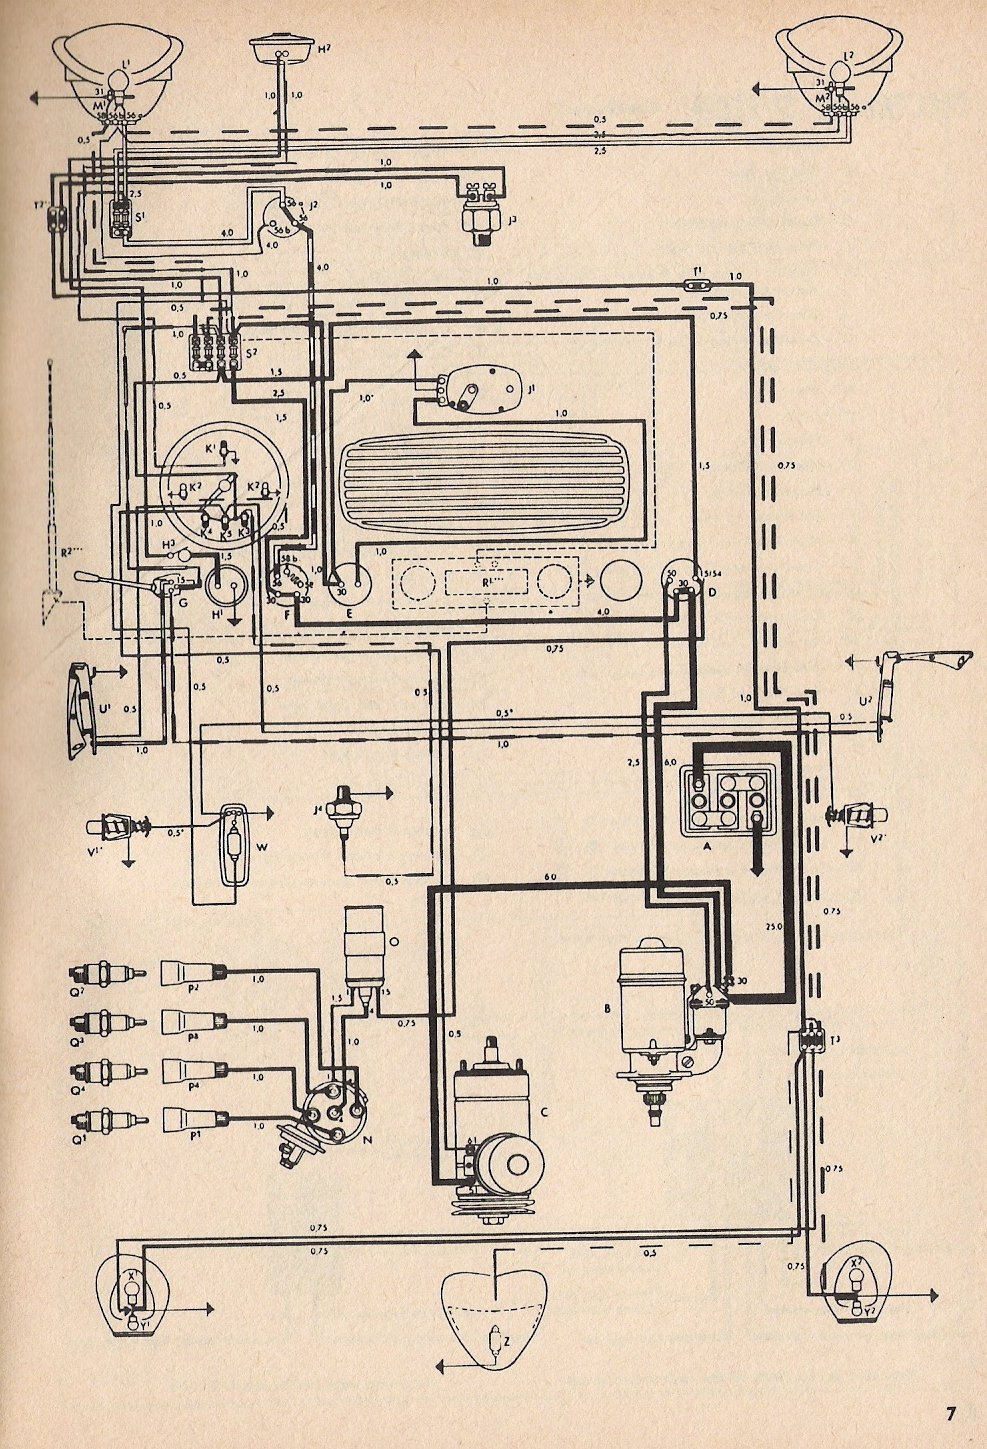 bug_54 thesamba com type 1 wiring diagrams 1957 vw bug wiring diagram at soozxer.org